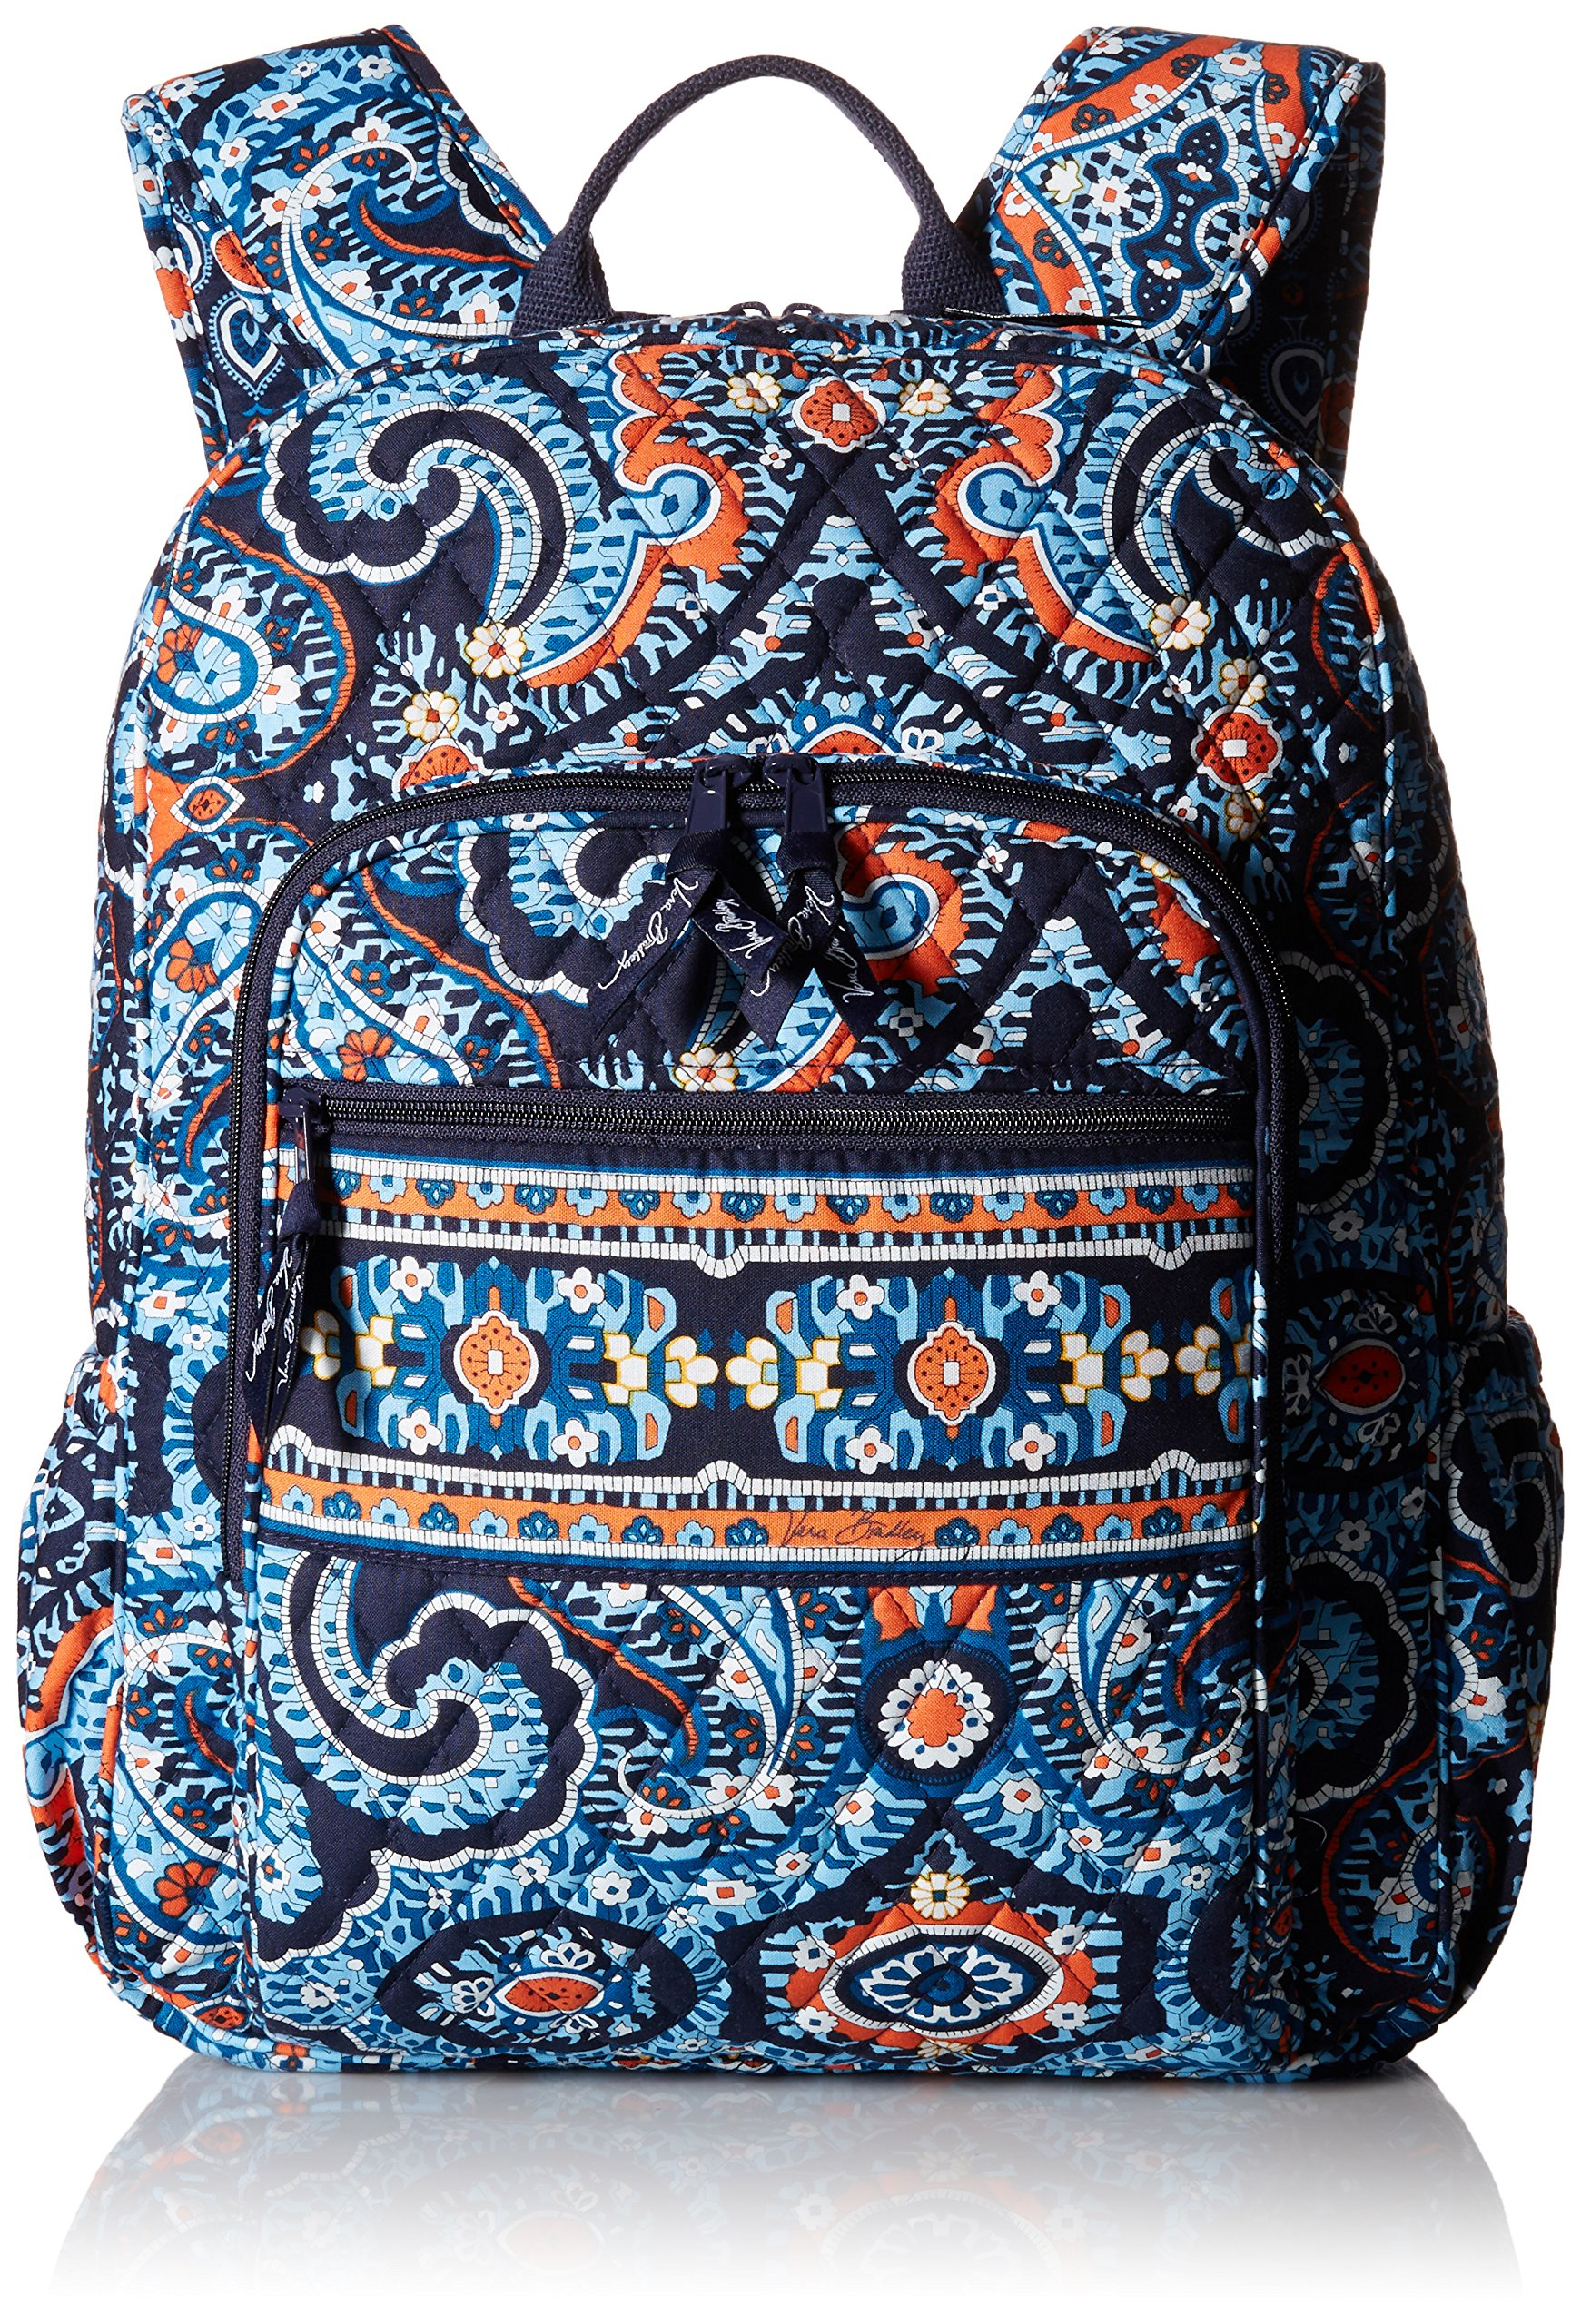 Vera Bradley Campus Backpack, Marrakesh, One Size